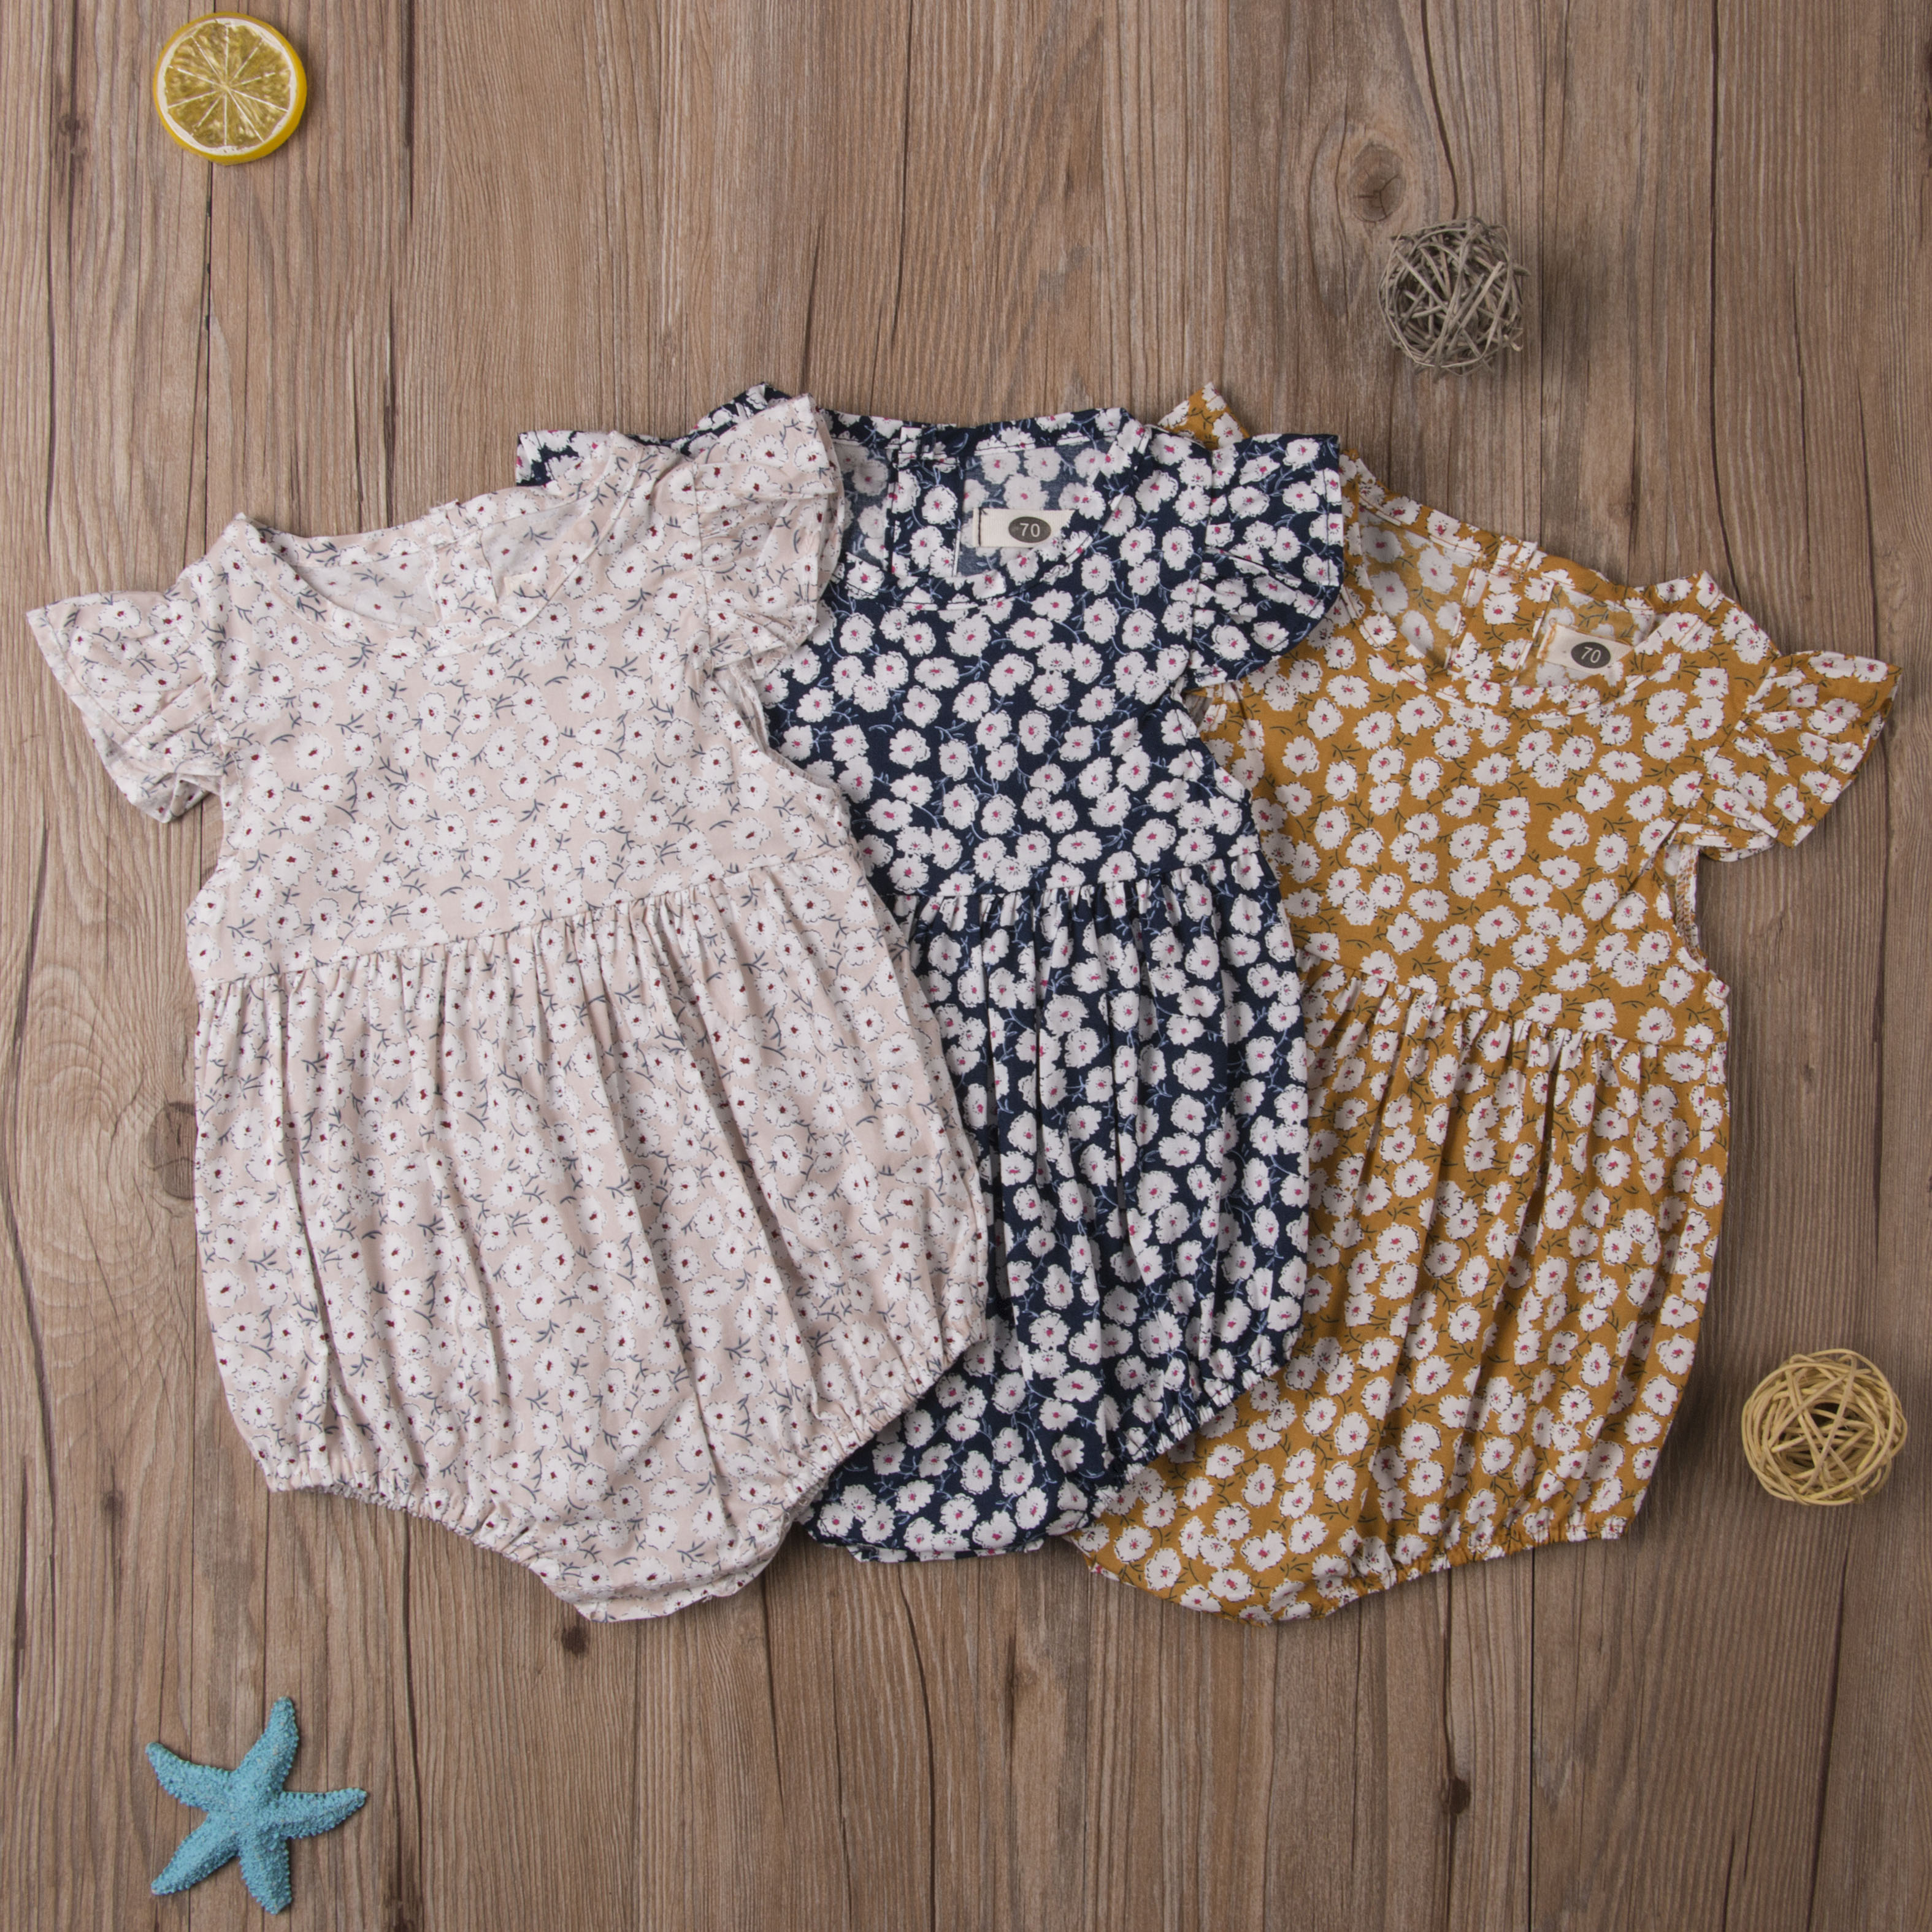 Infant Cute Baby Toddler Girls Summer Floral Jumpsuit Sleeveless Bodysuit One-piece Outfits Summer Casual Baby Clothes 0-24M